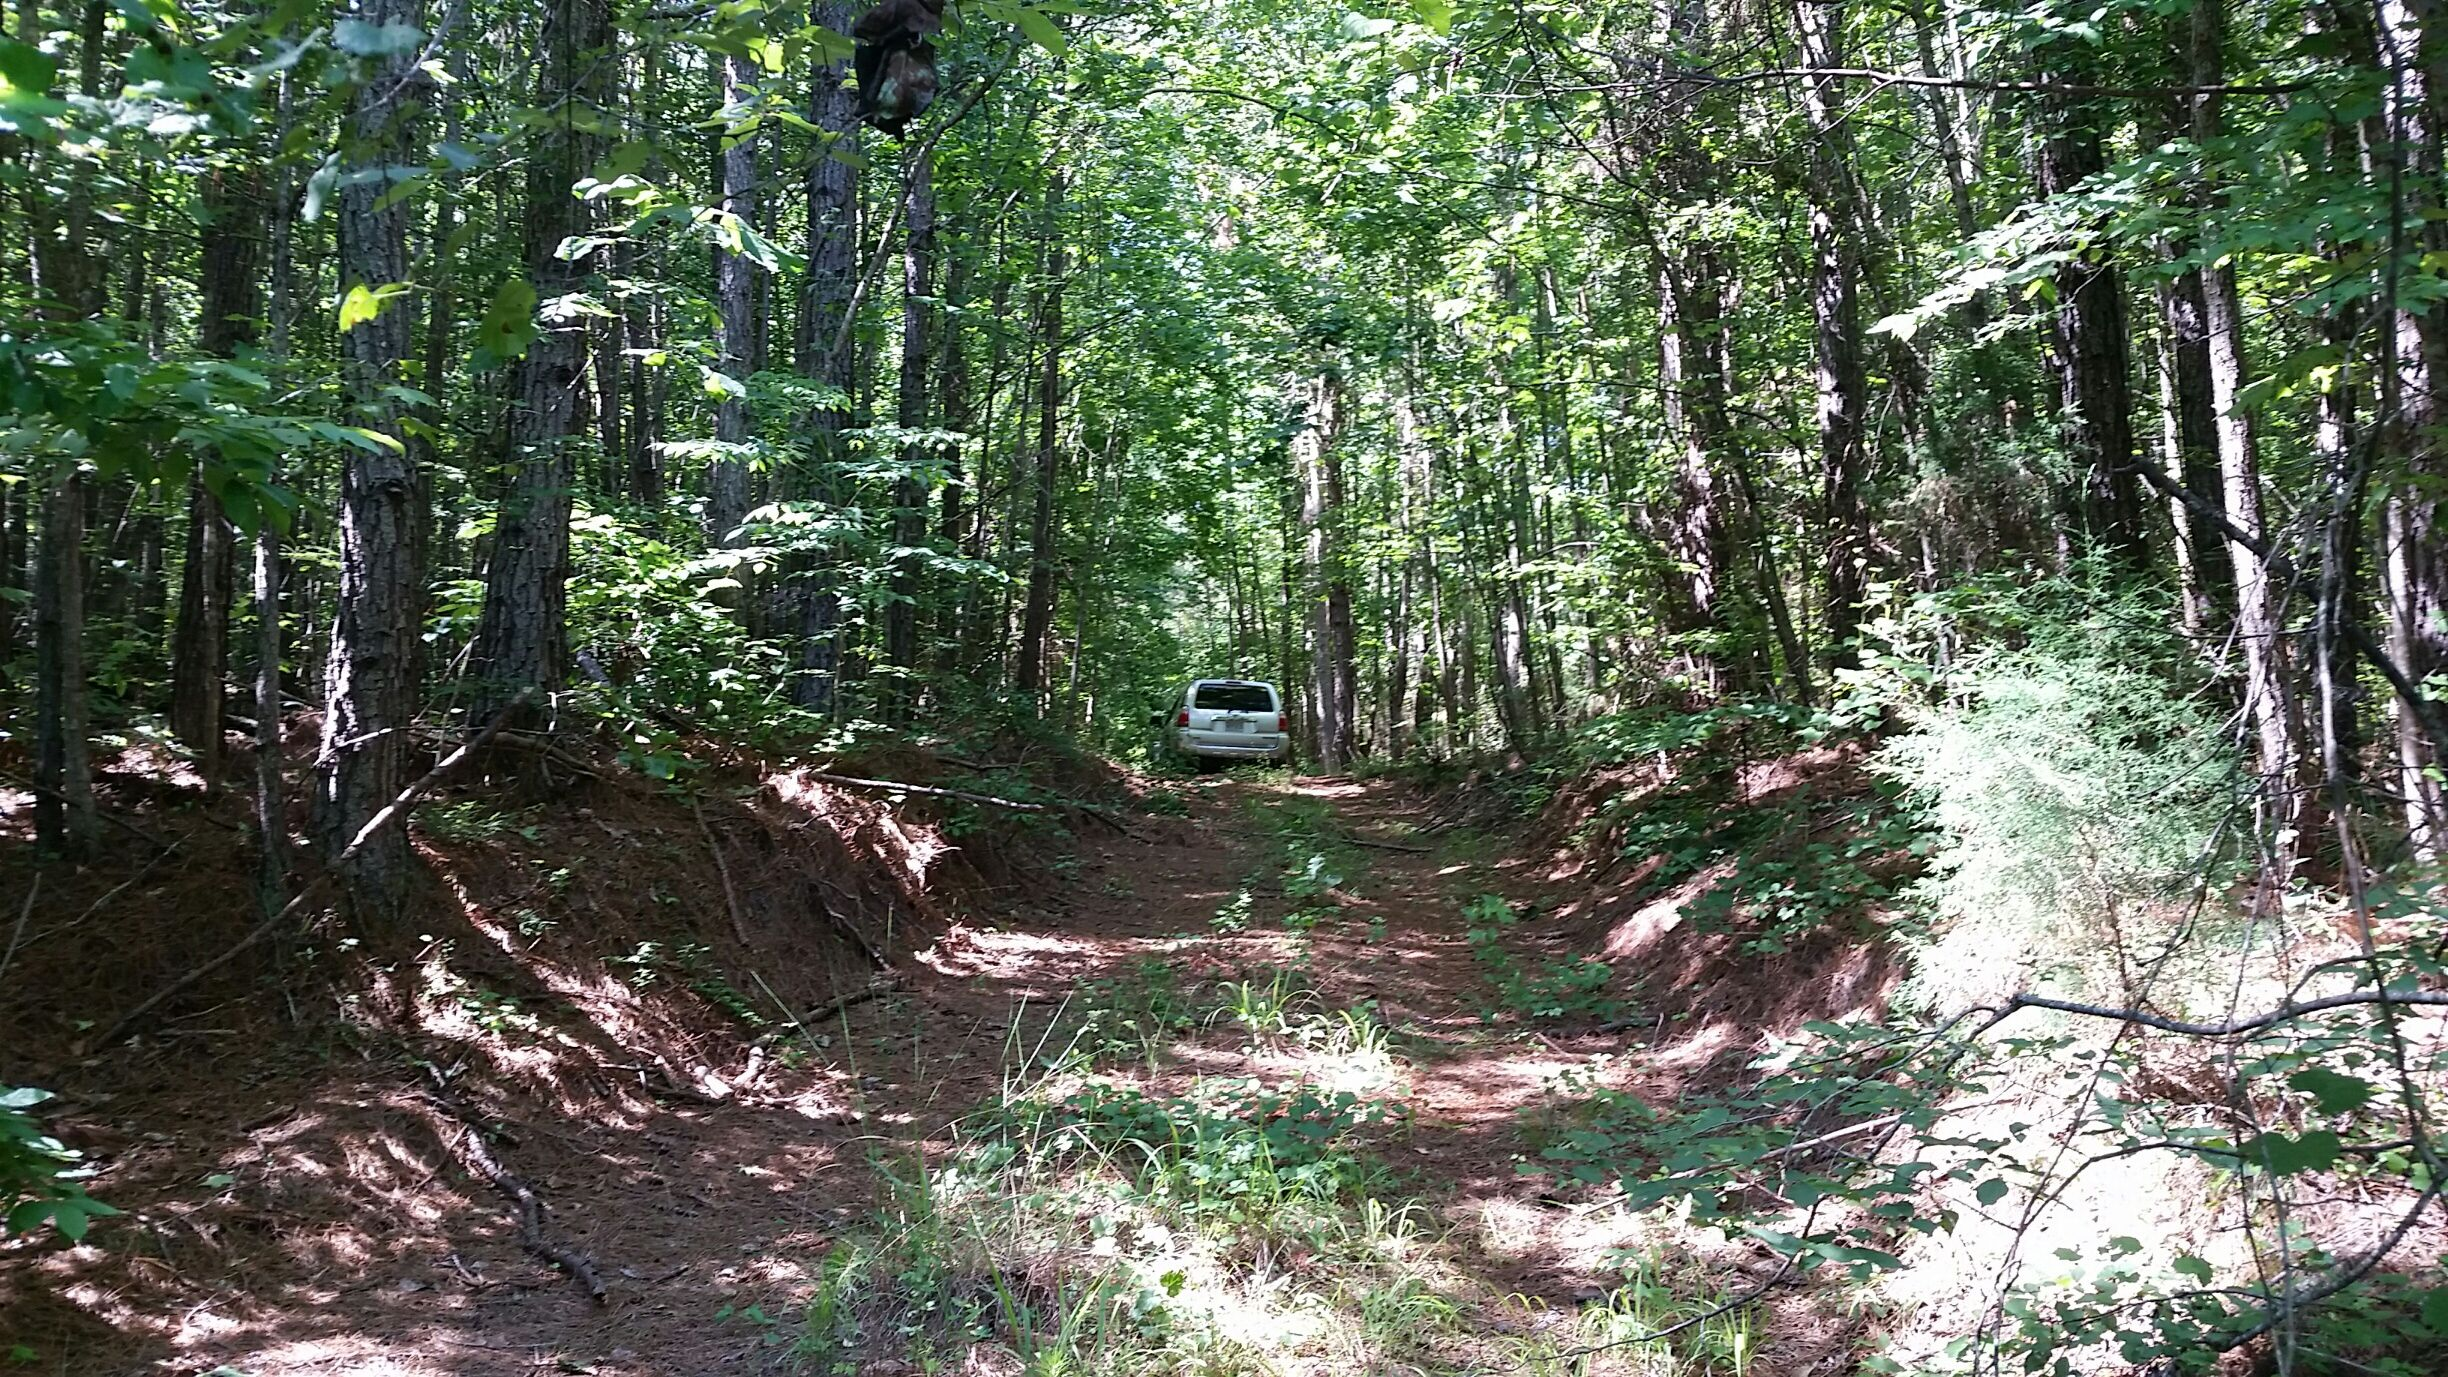 A view of the woods road that leads into the property